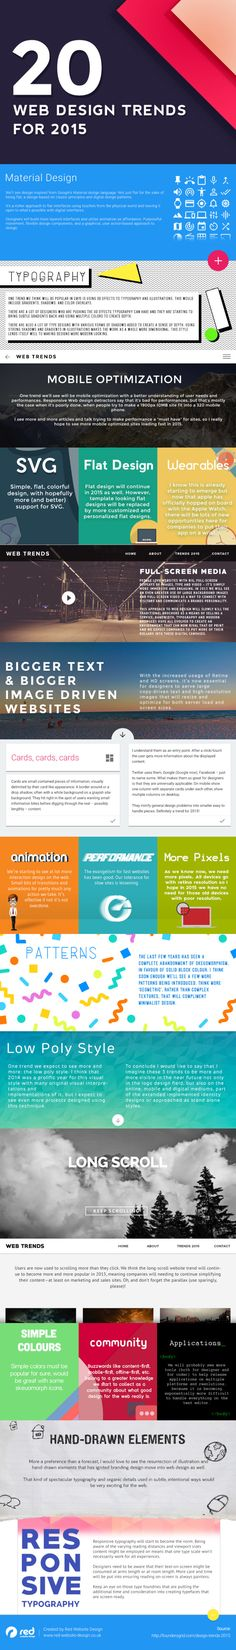 [Infographie] 20 tendances webdesign à guetter en 2015 || 20 Web Design Trends for 2015 #UX #UI #design